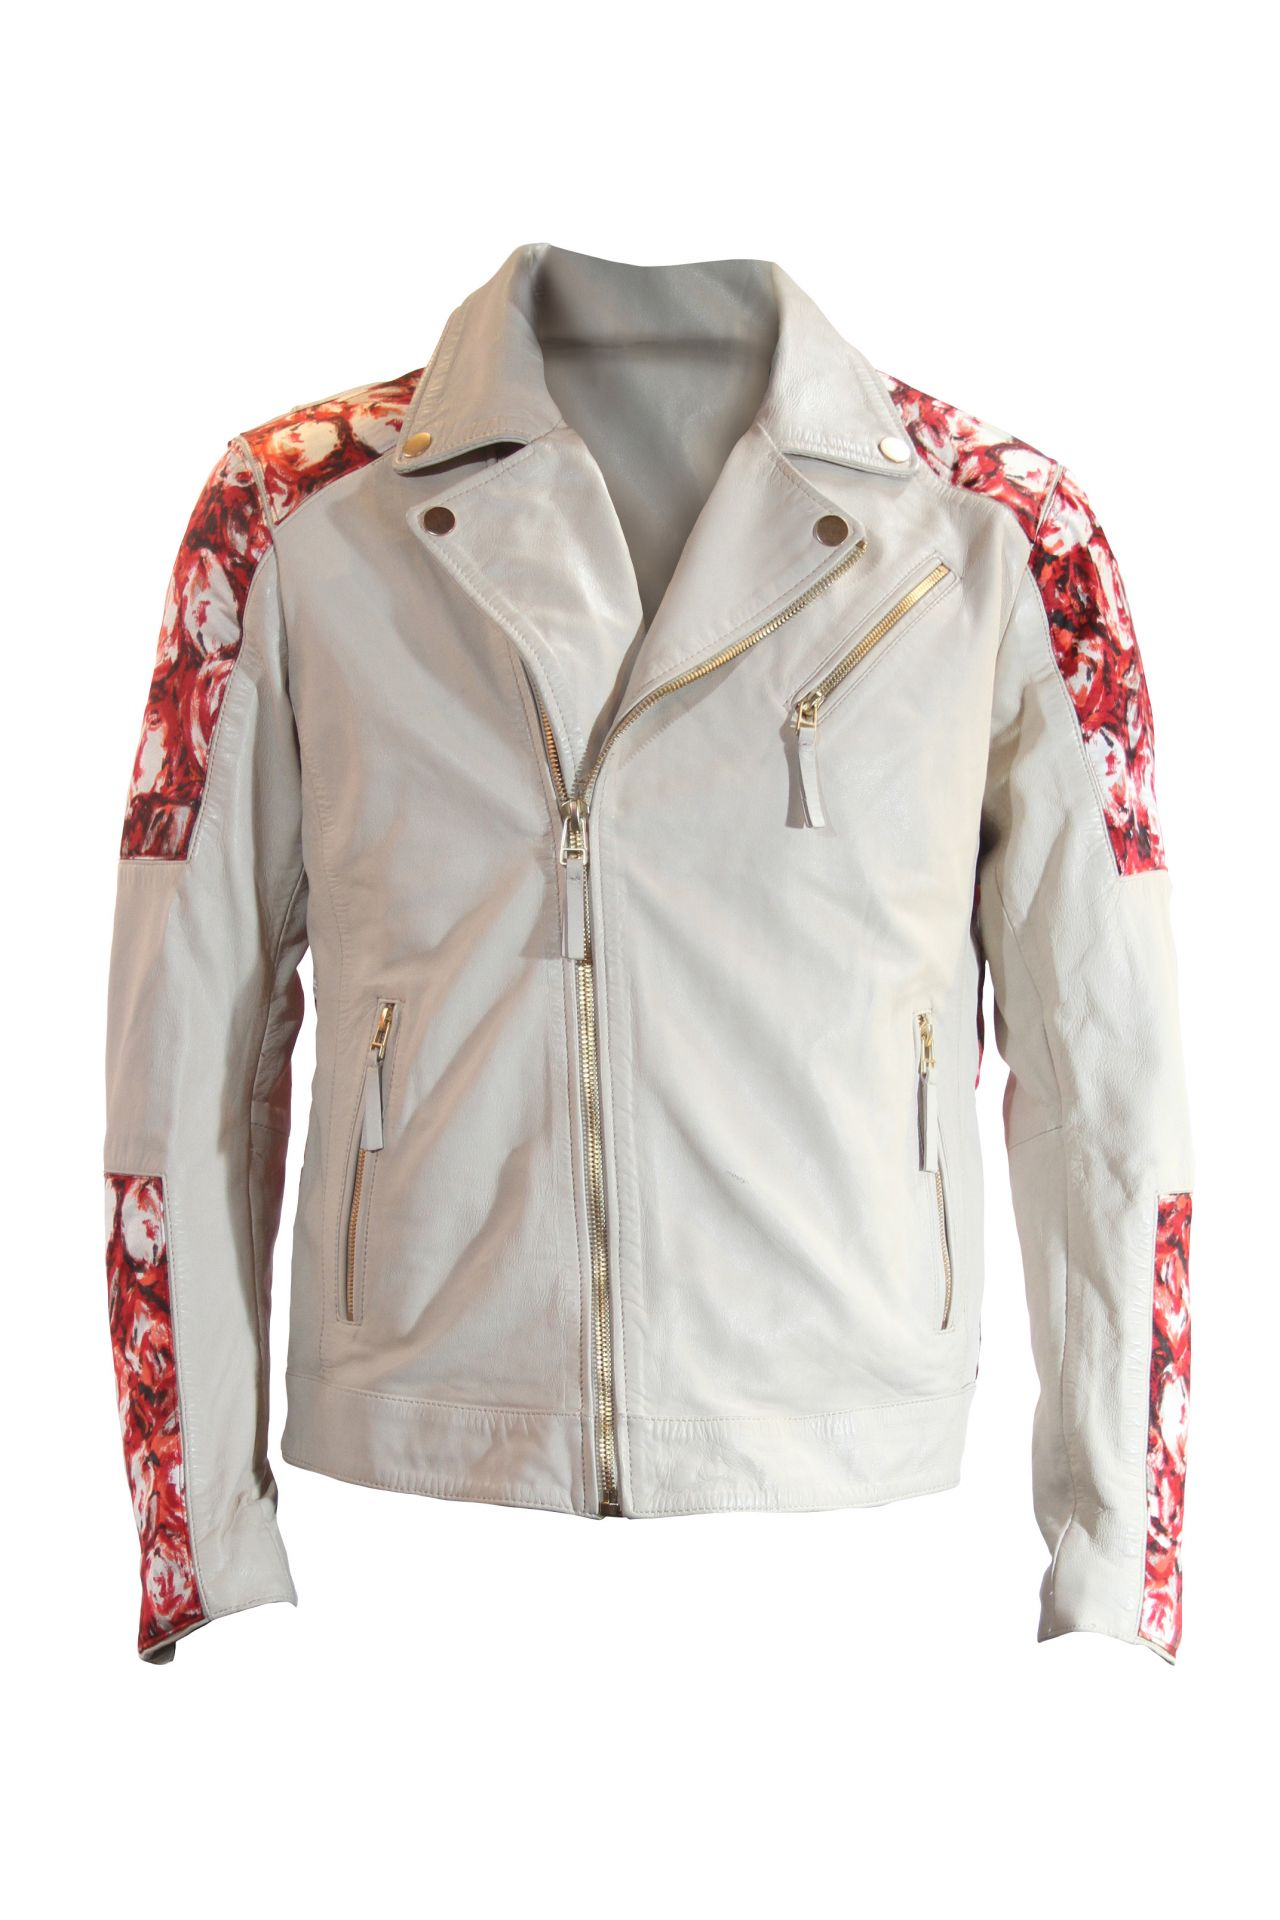 WHITE LEATHER BIKER WITH FLOWERS